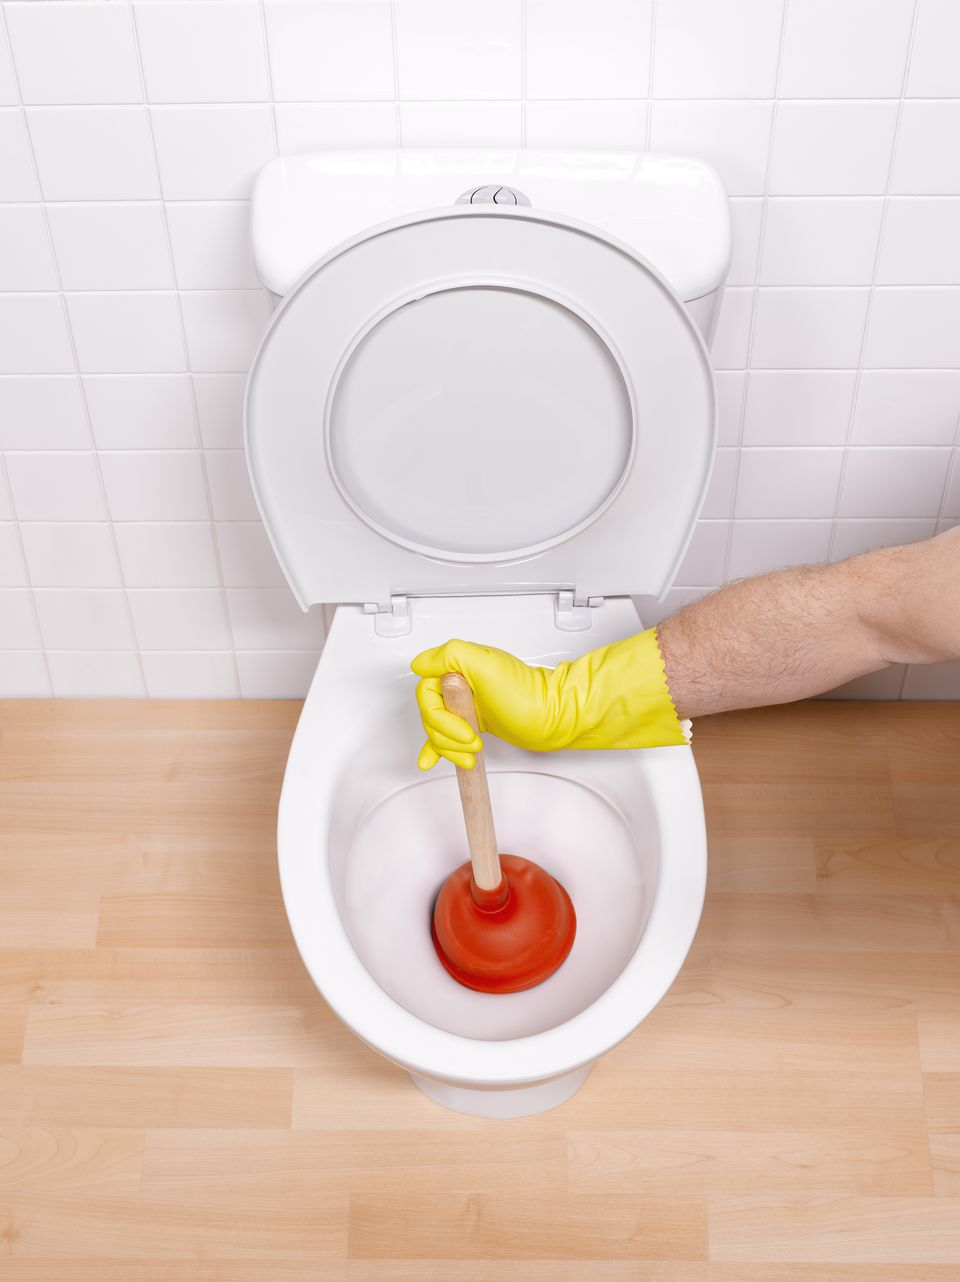 Man sticking toilet plunger in toilet bowl